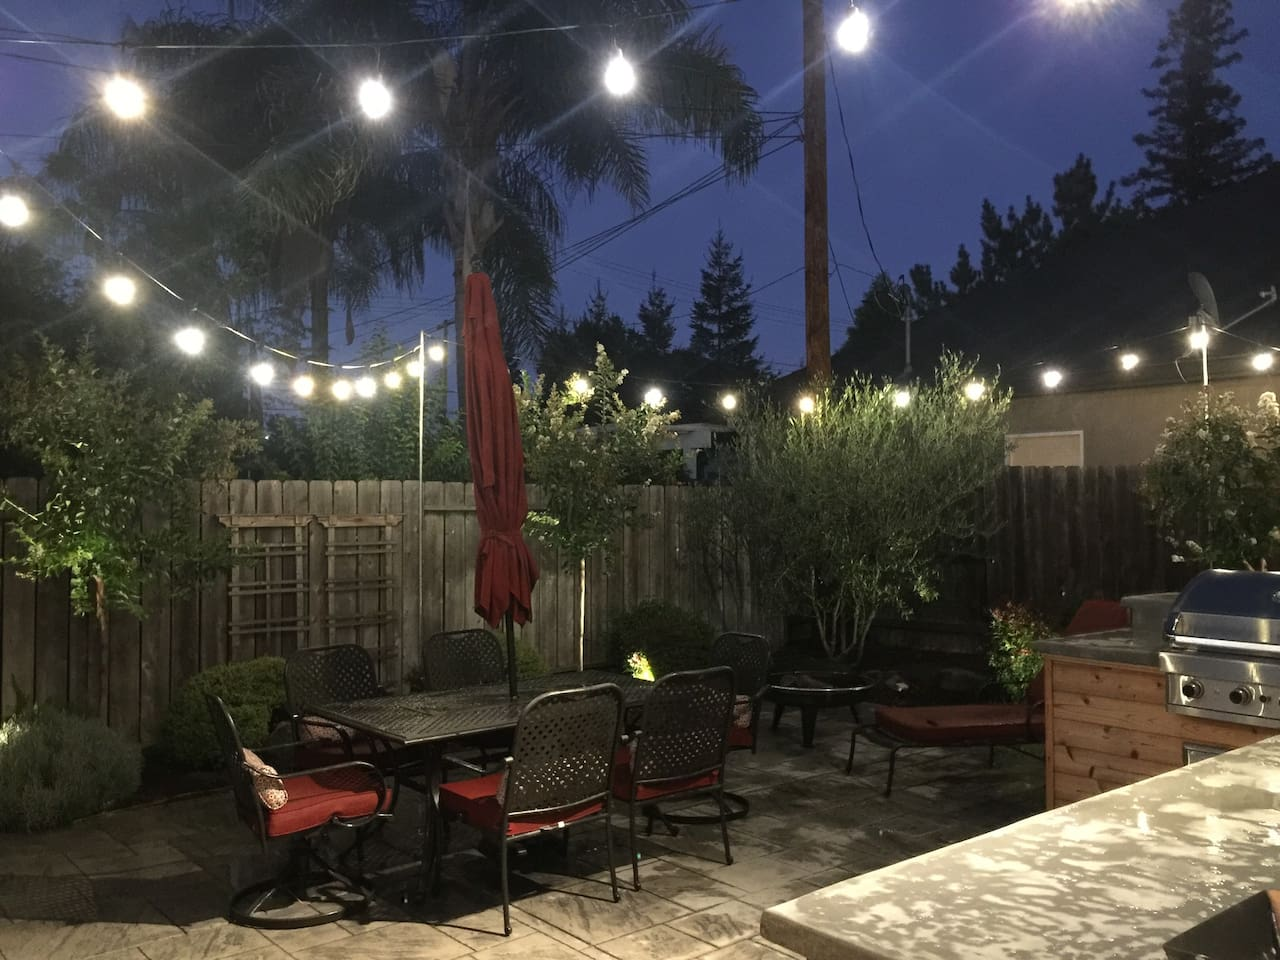 Gorgeous well lit backyard all amenities